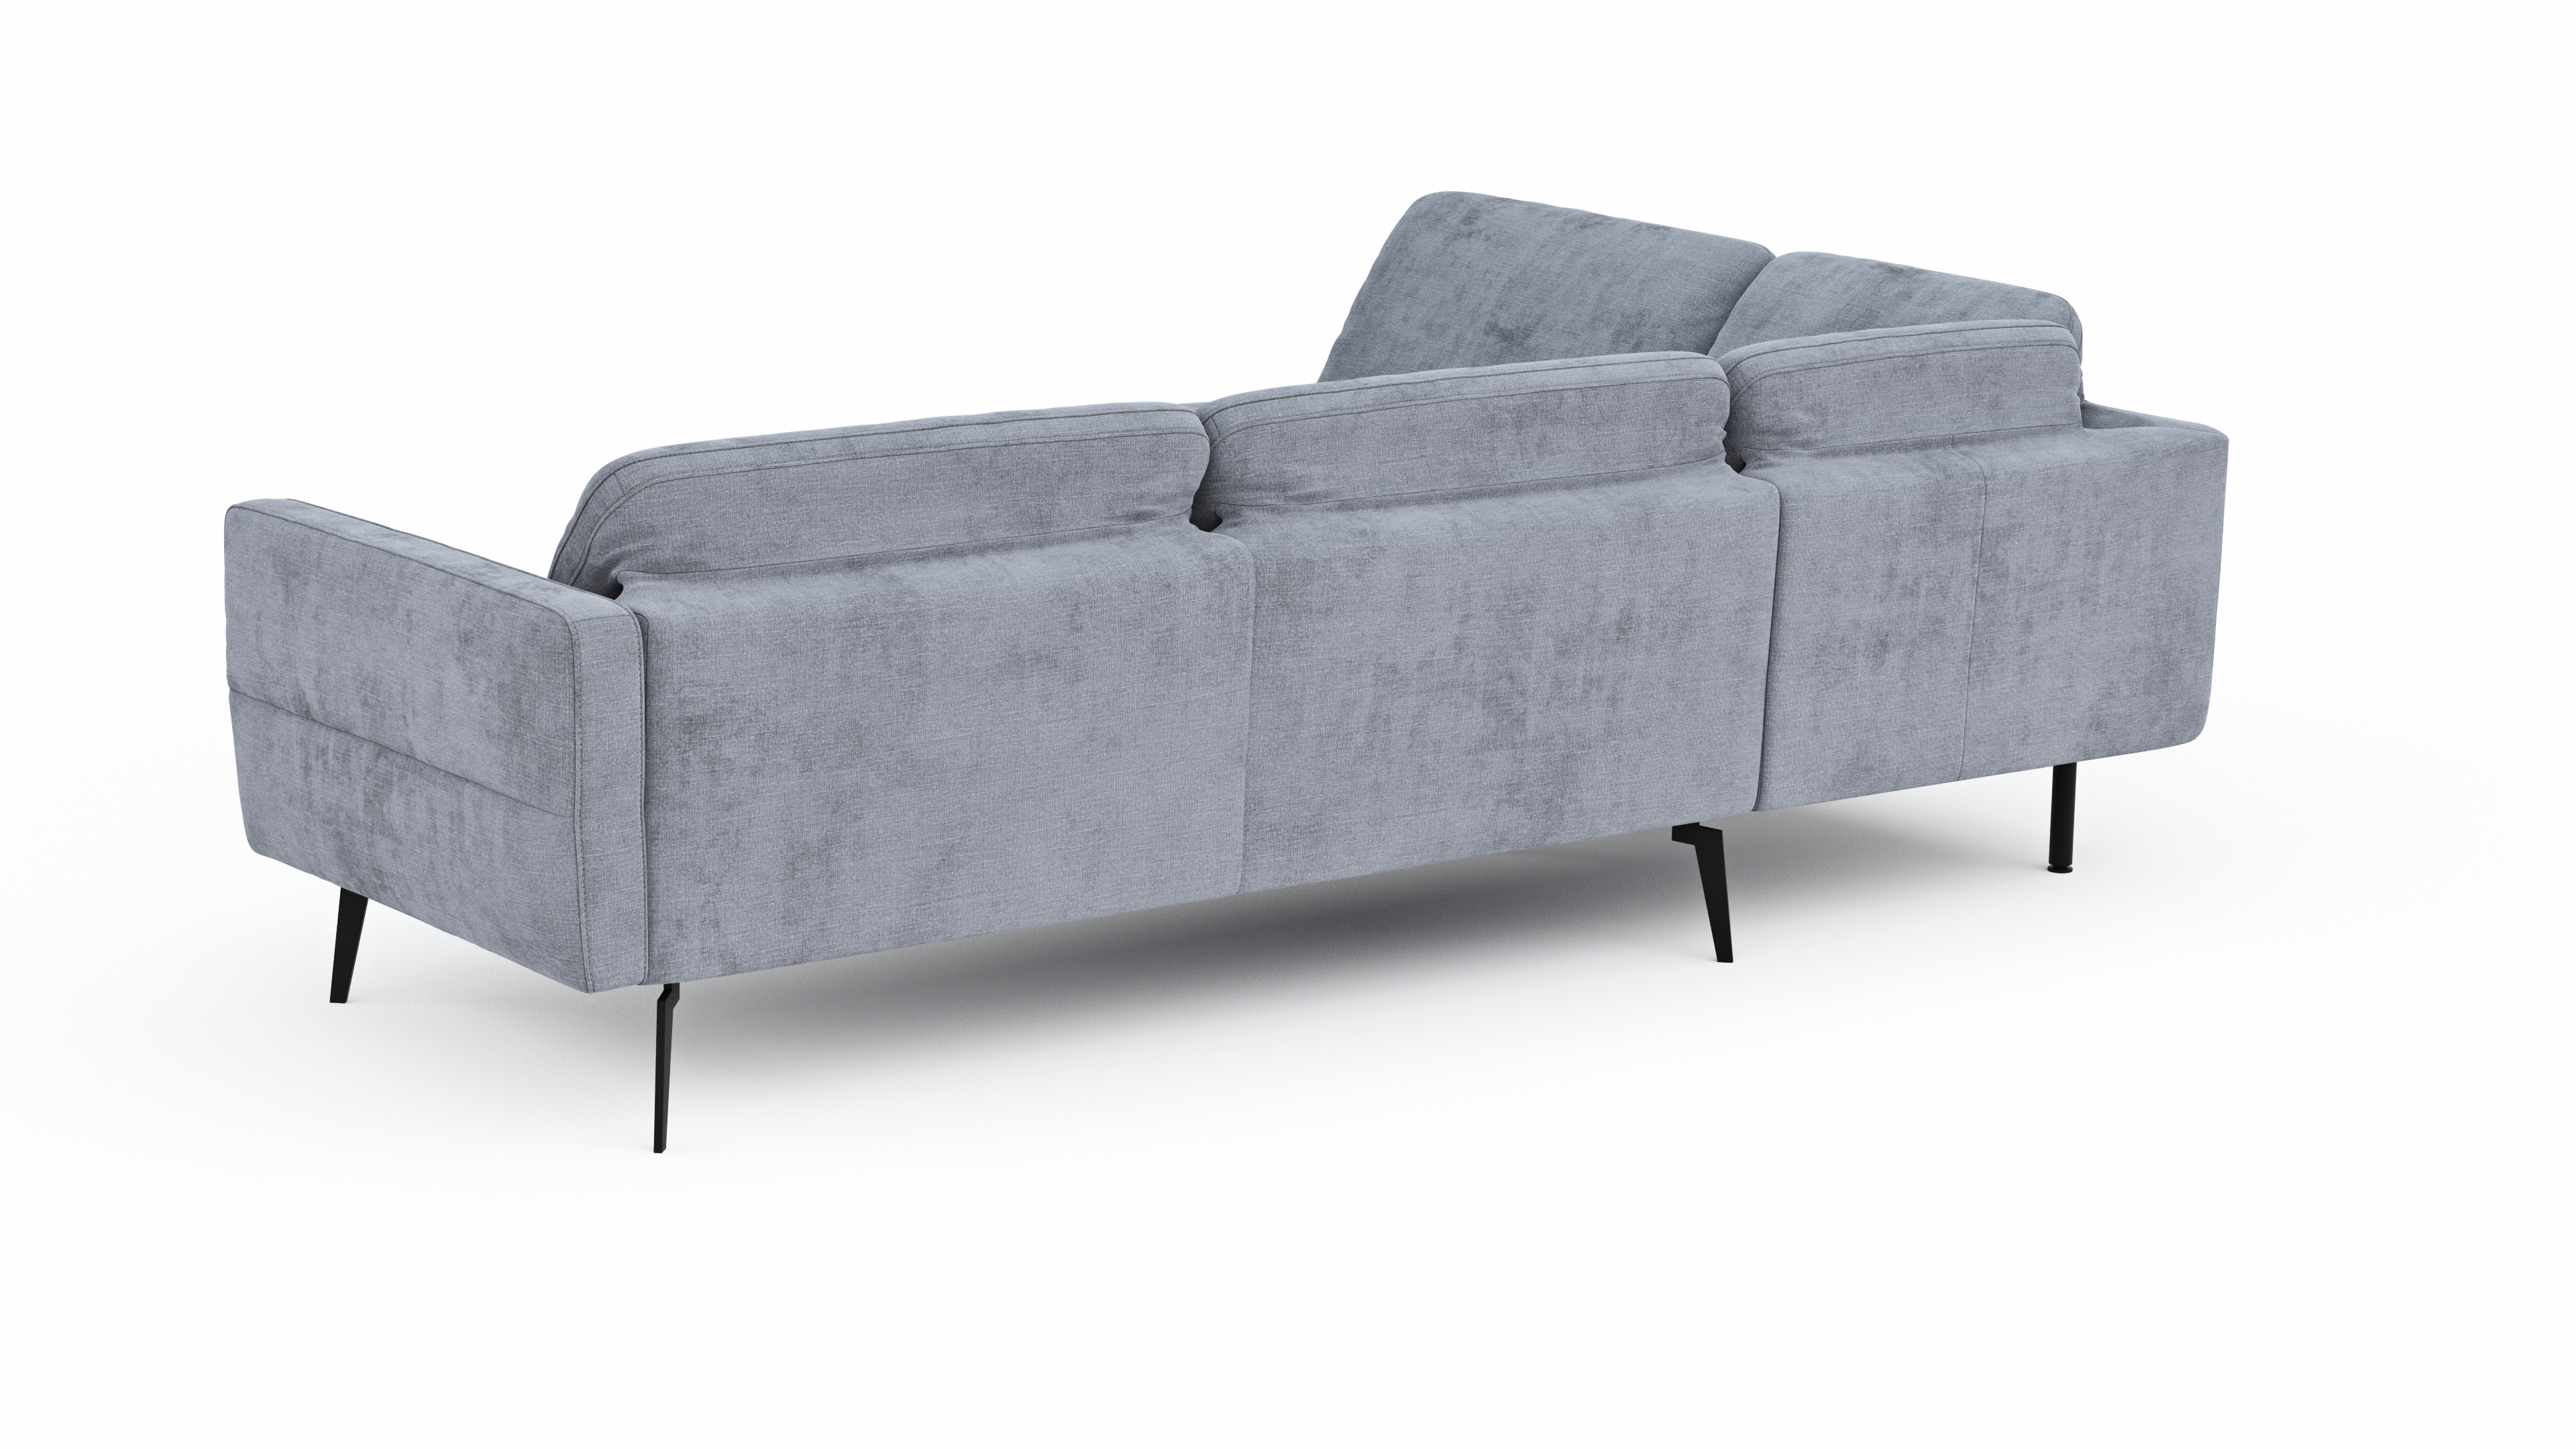 Global Select Ecksofa Estrela freisteller 3 104247 | Homepoet